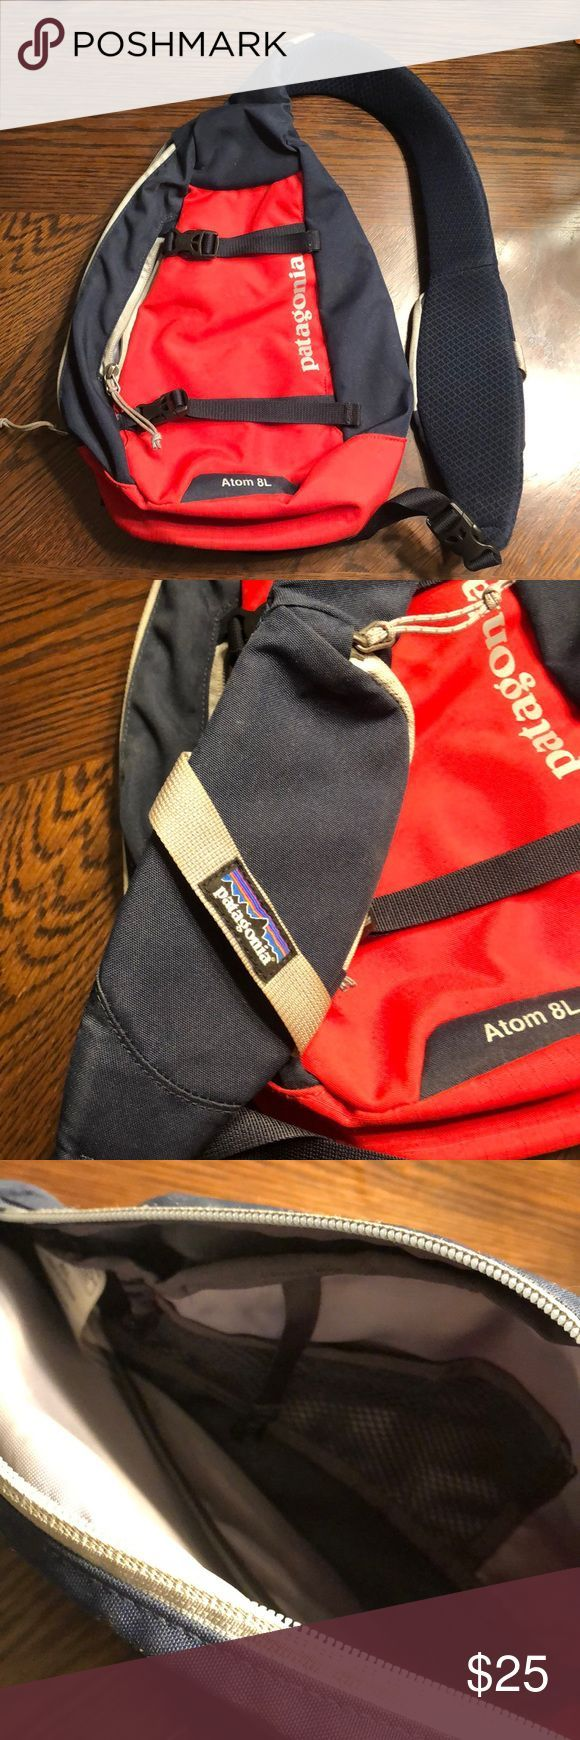 Patagonia Atom Sling Bag 8L Gently used Good condition Padded backside Blue a   Patagonia Atom Sling Bag 8L Gently used Good condition Padded backside Blue a